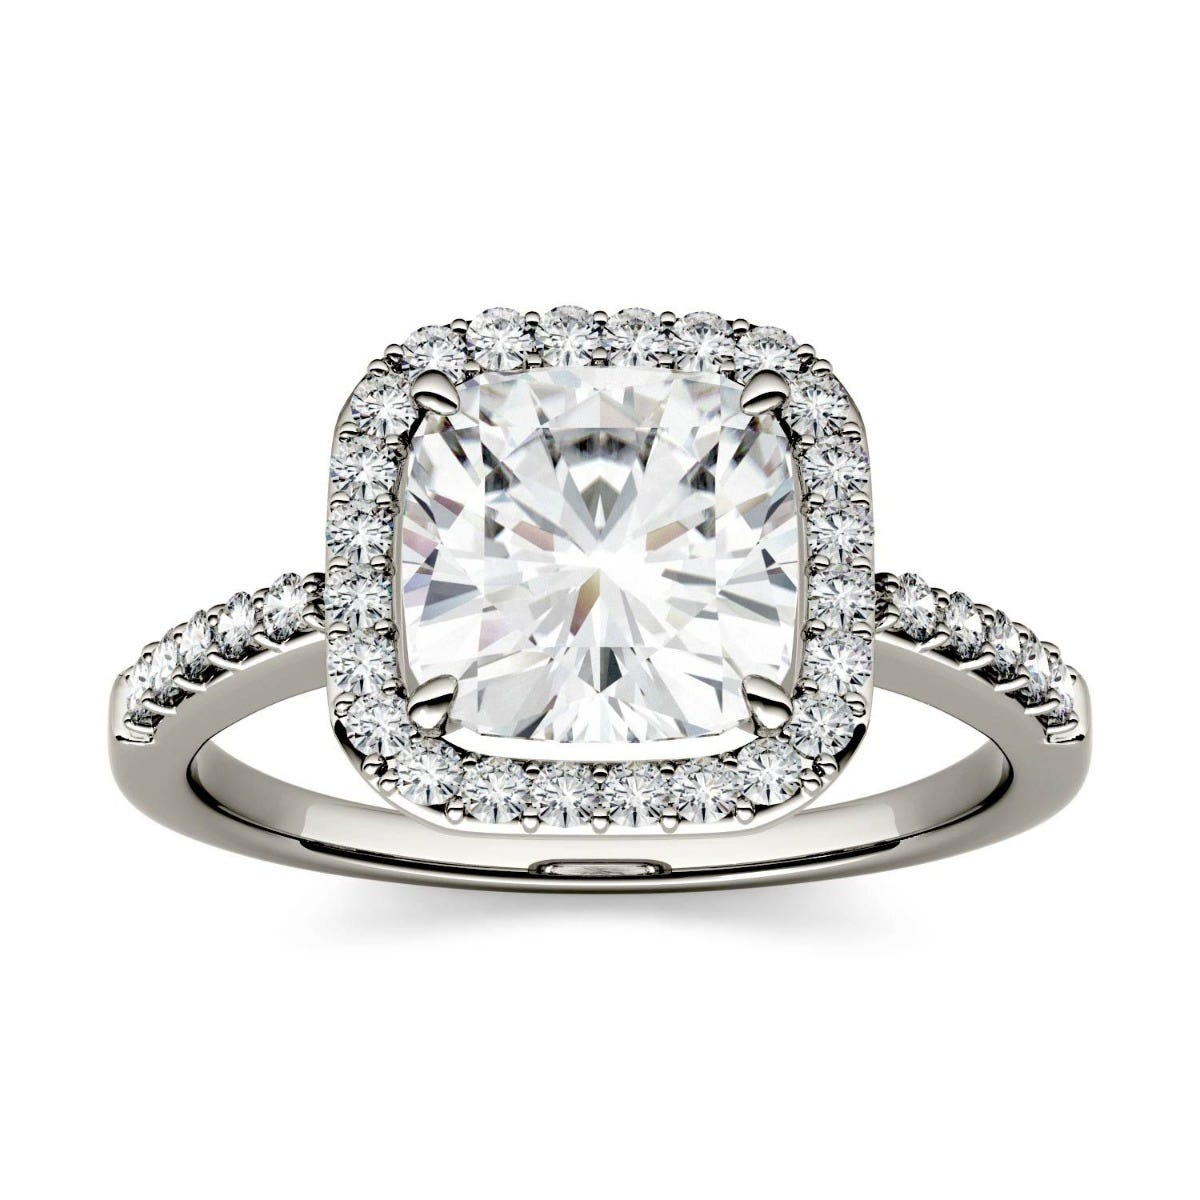 Forever One Cushion Colorless Moissanite Halo with Side Accents Engagement Ring in 14K White Gold